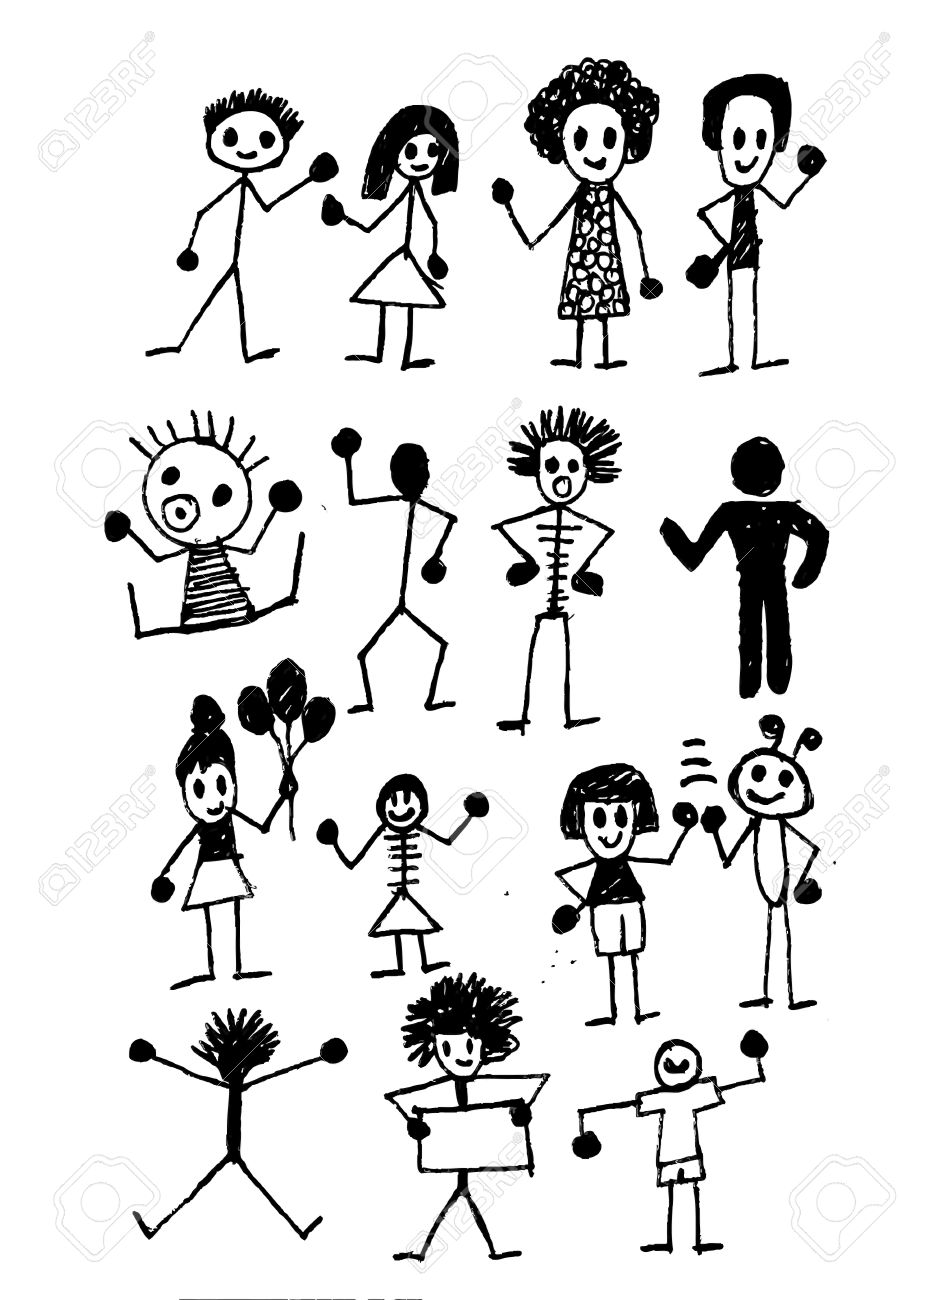 Cute Cartoon Boys And Girls Clip Art Illustration And Drawing.